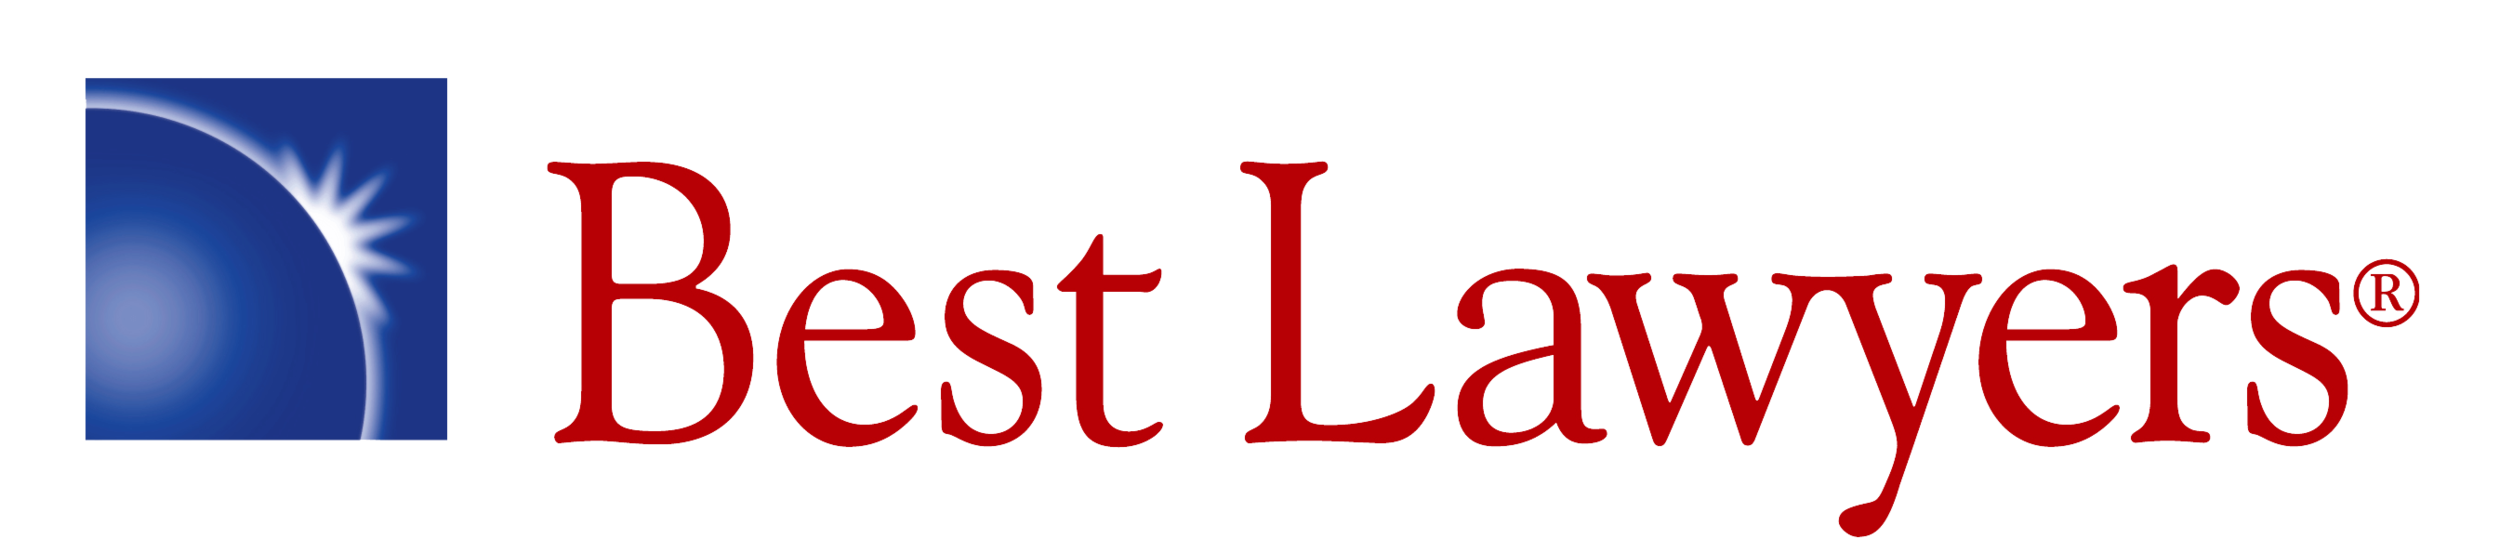 Best-Lawyers-Logo1.png